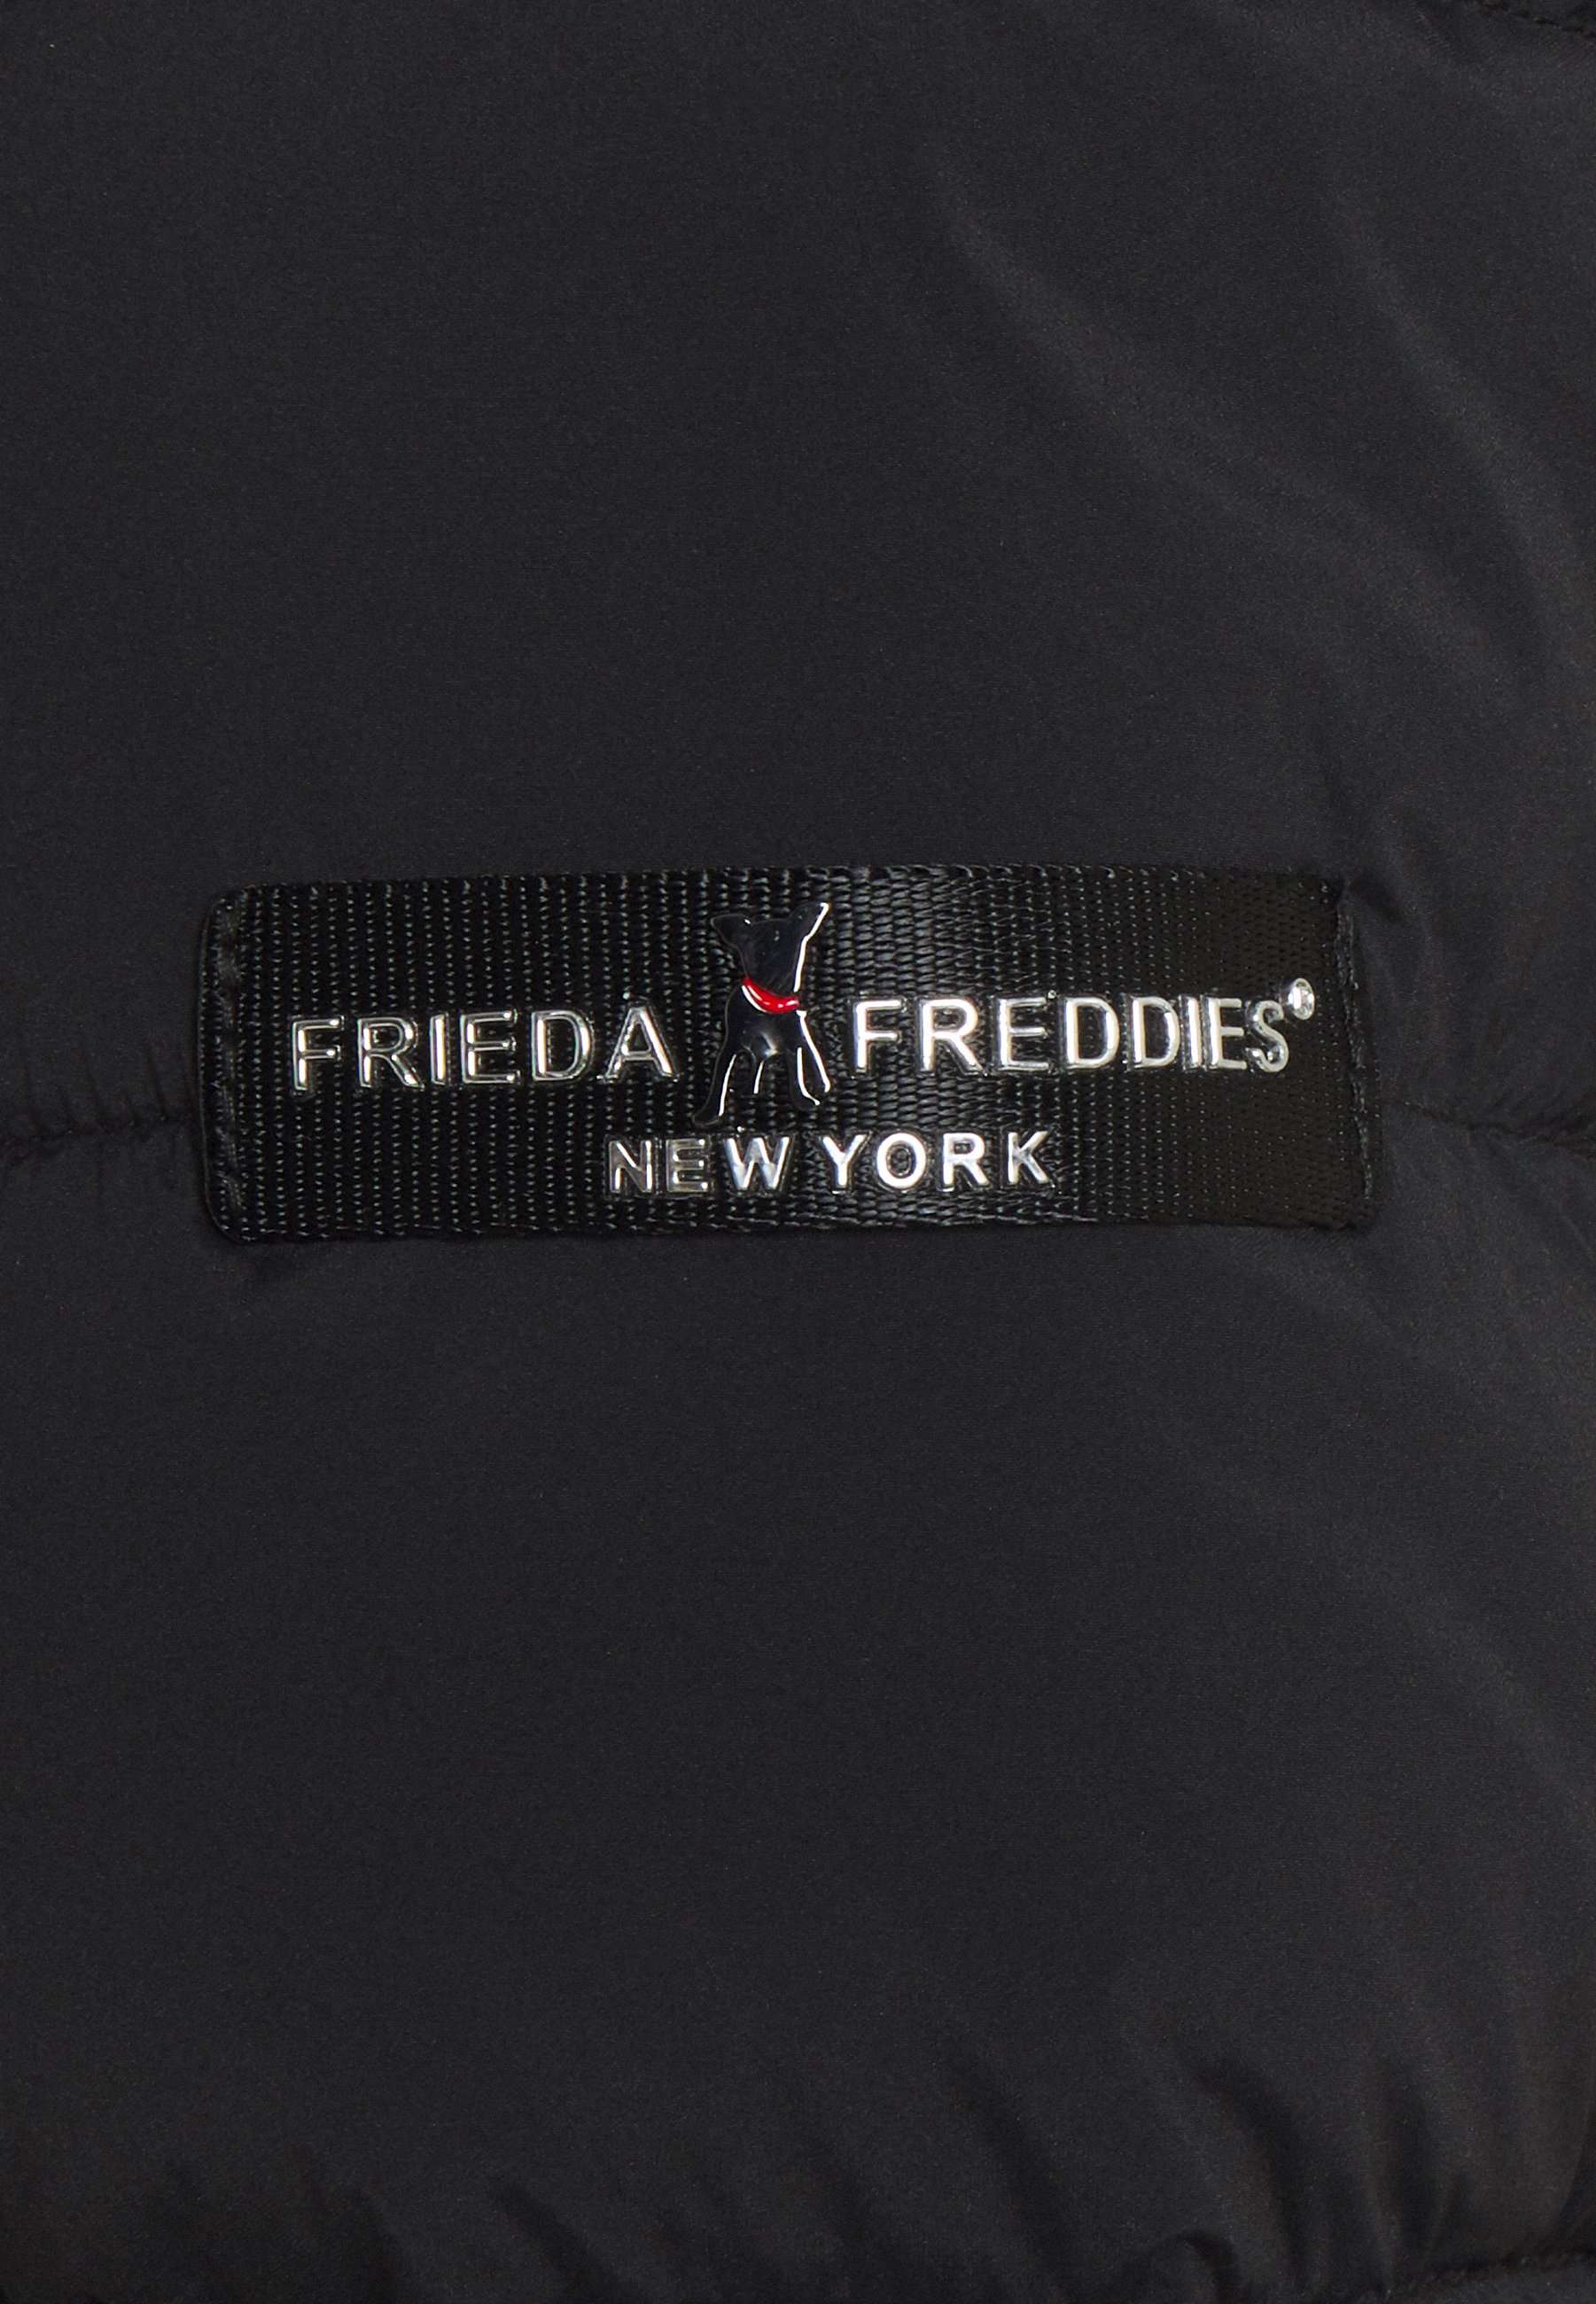 Frieda & Freddies Vinterkåpe frakk black Zalando.no